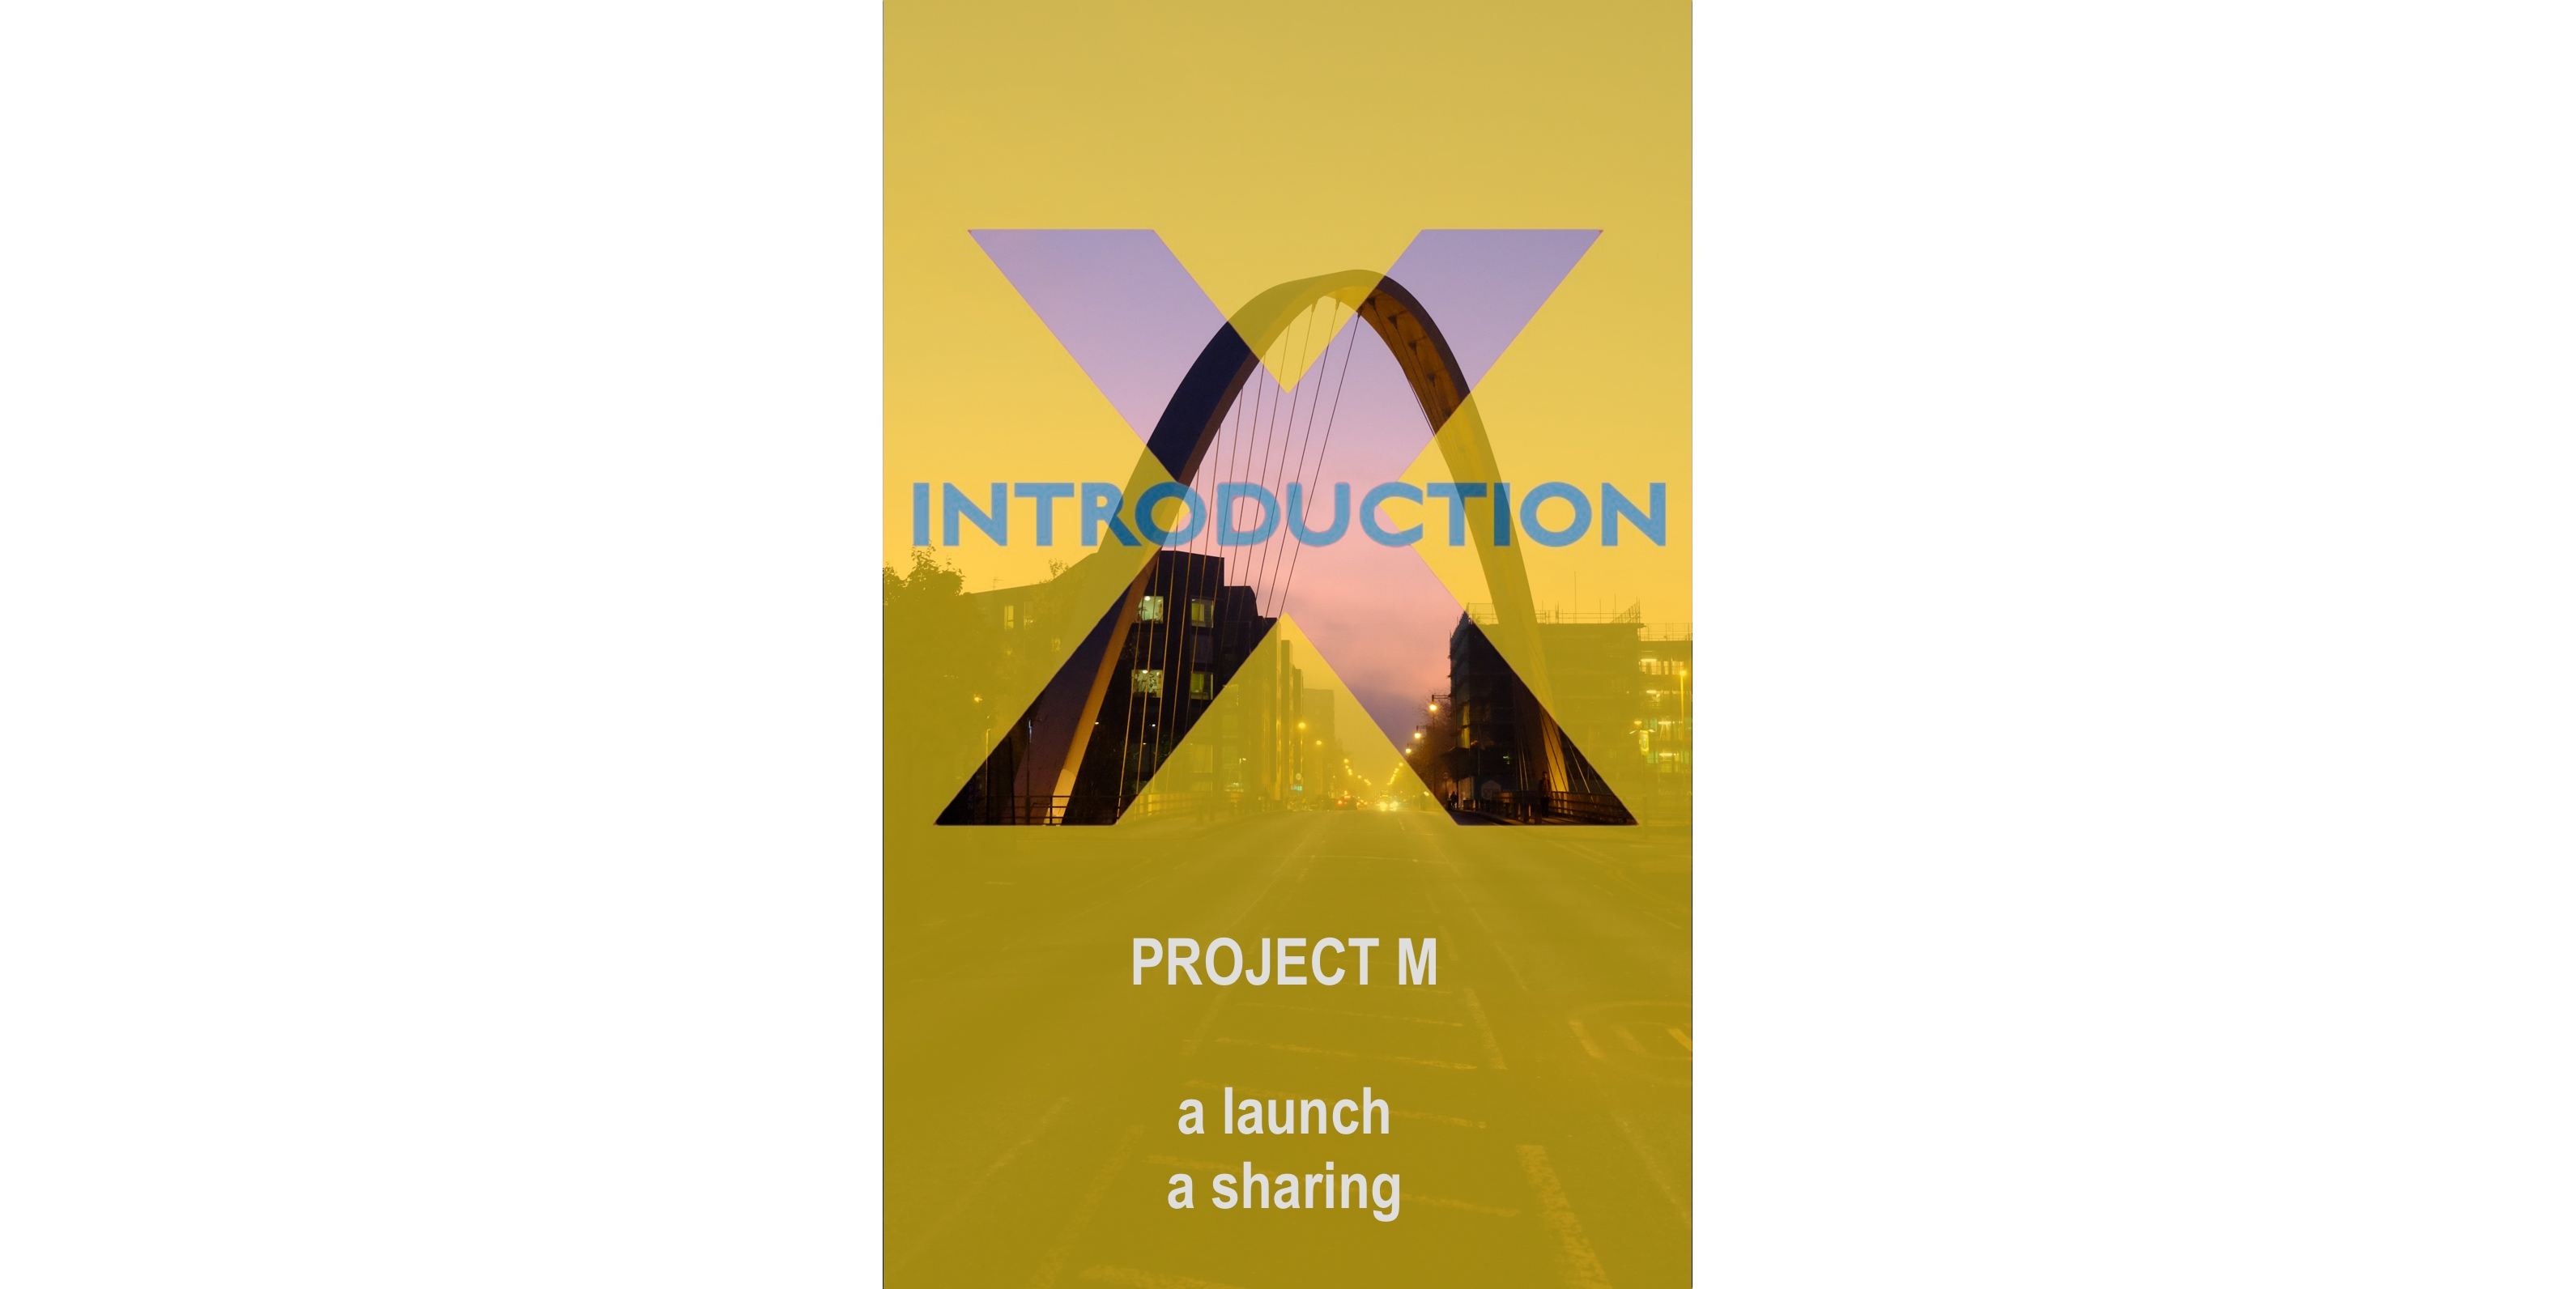 Introduction X Launch & Project M Sharing